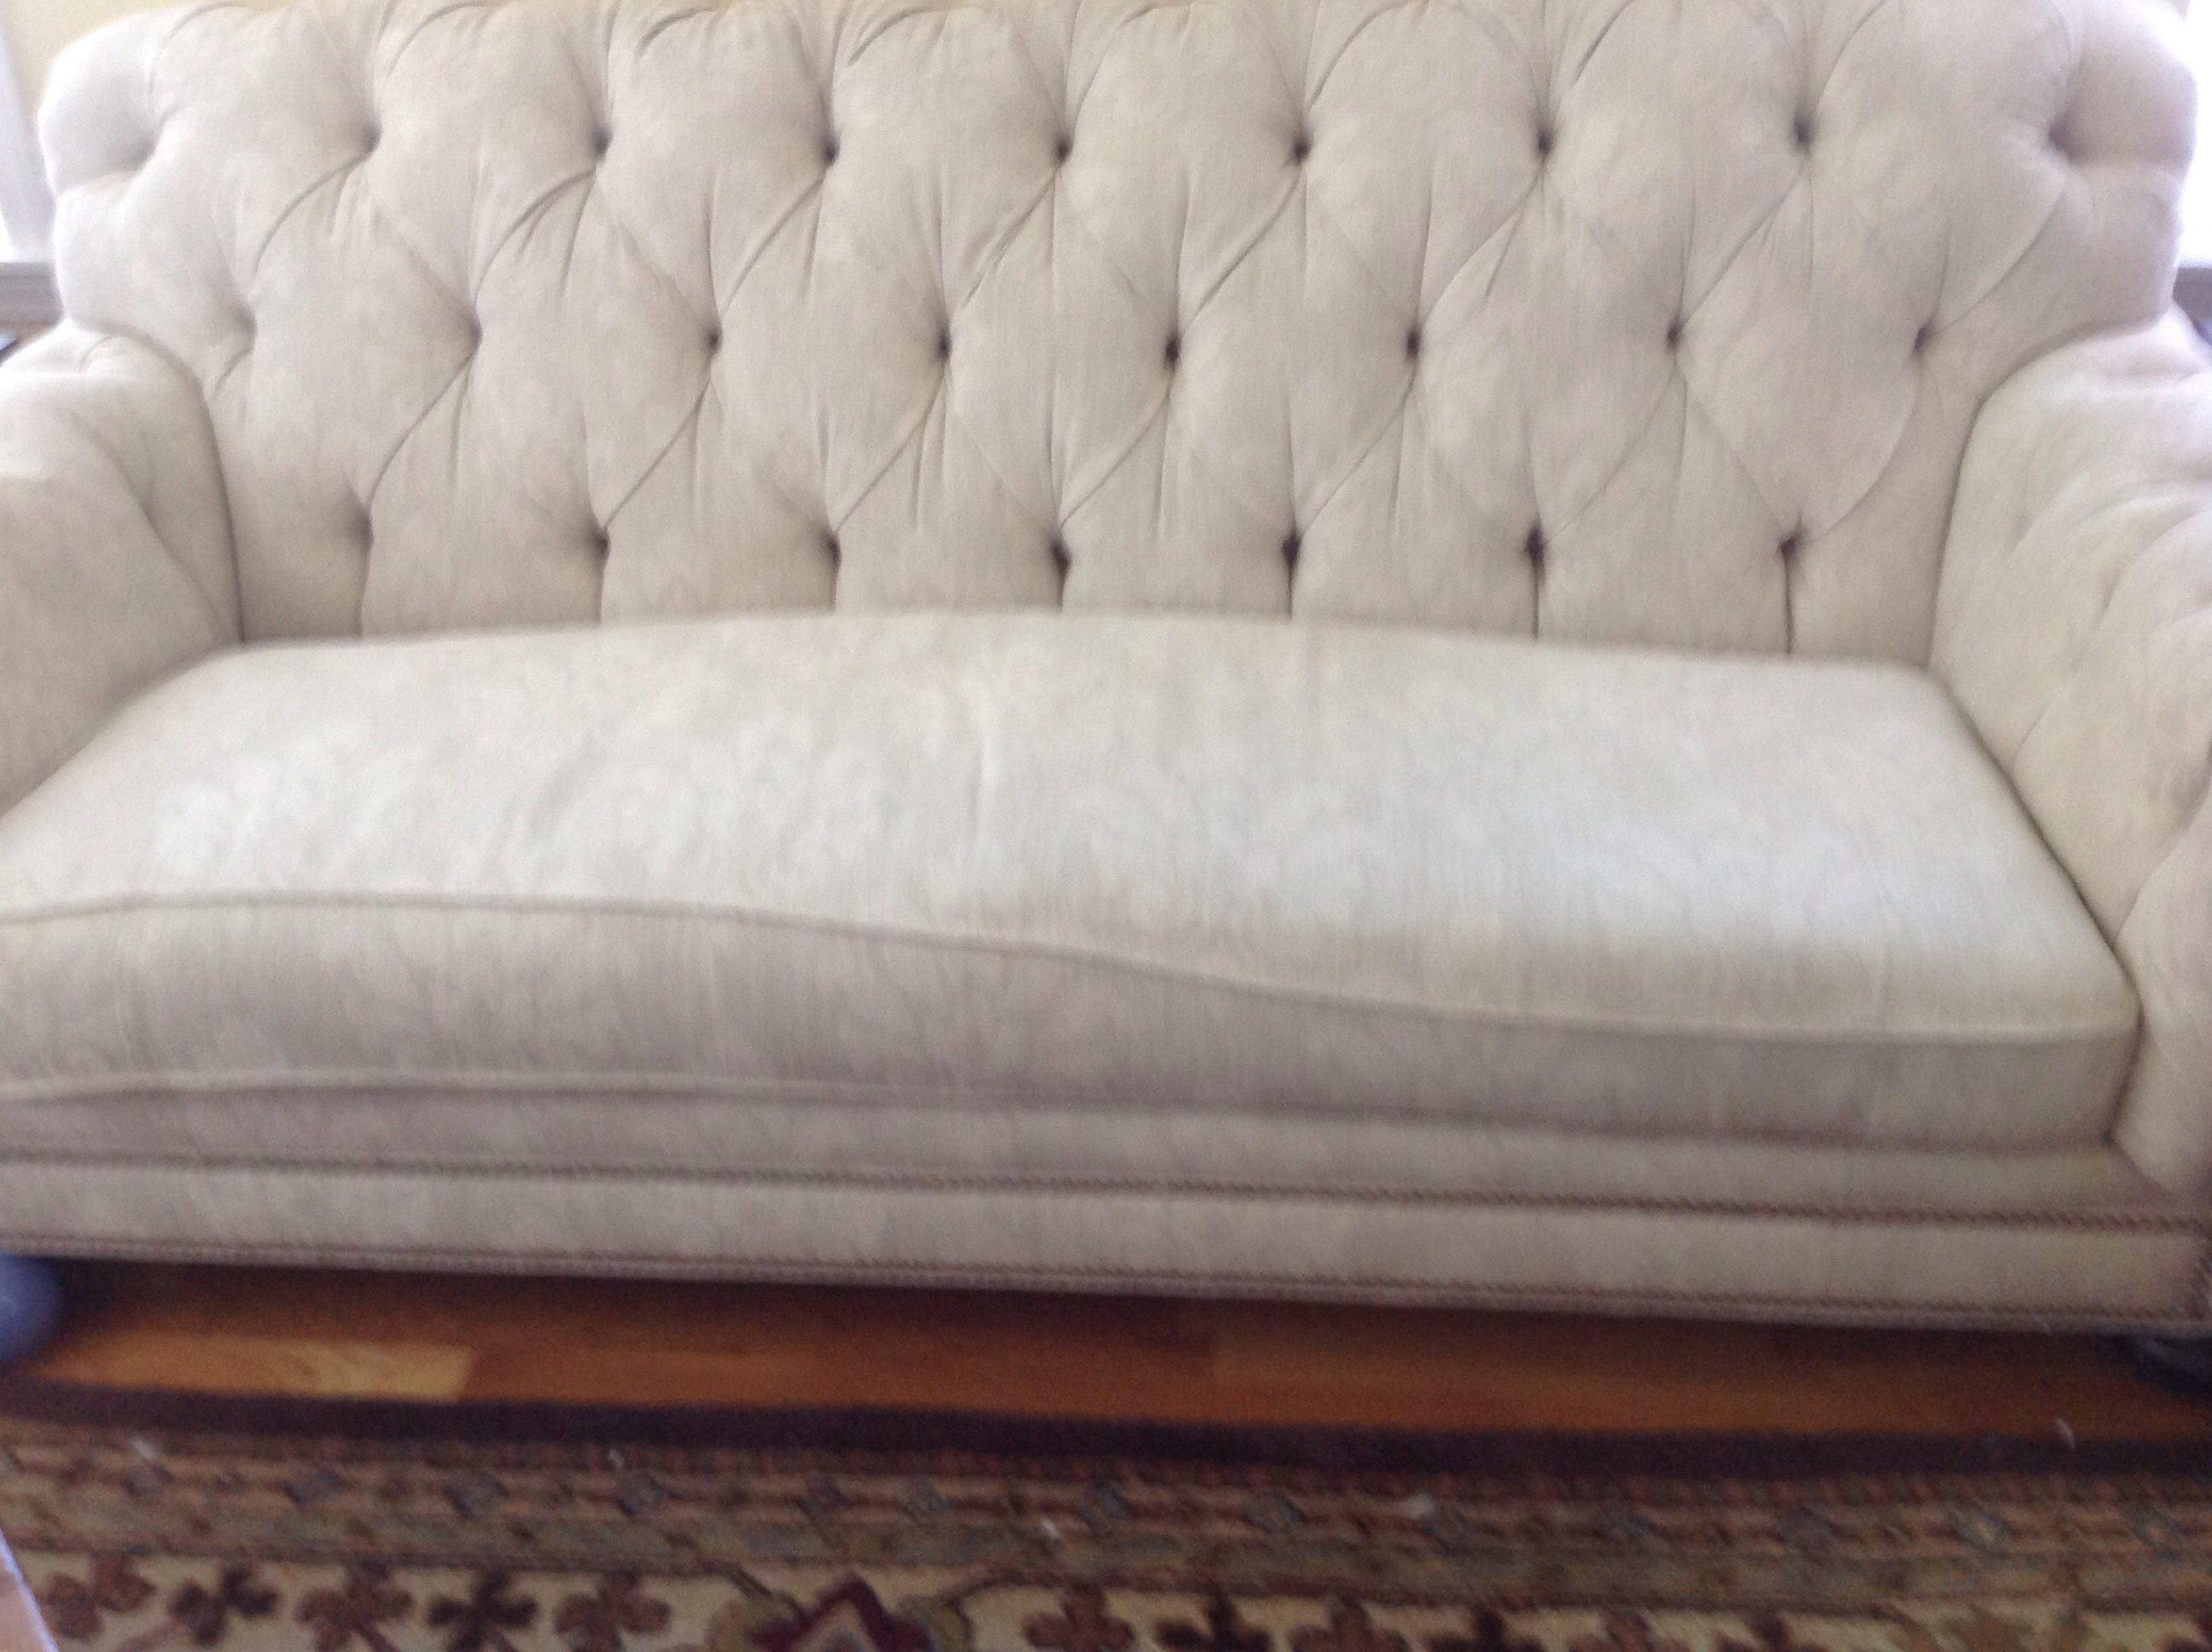 Sofas: Ethan Allen Upholstery | Ethan Allen Leather Couch | Ethan In Allen White Sofas (Image 18 of 20)